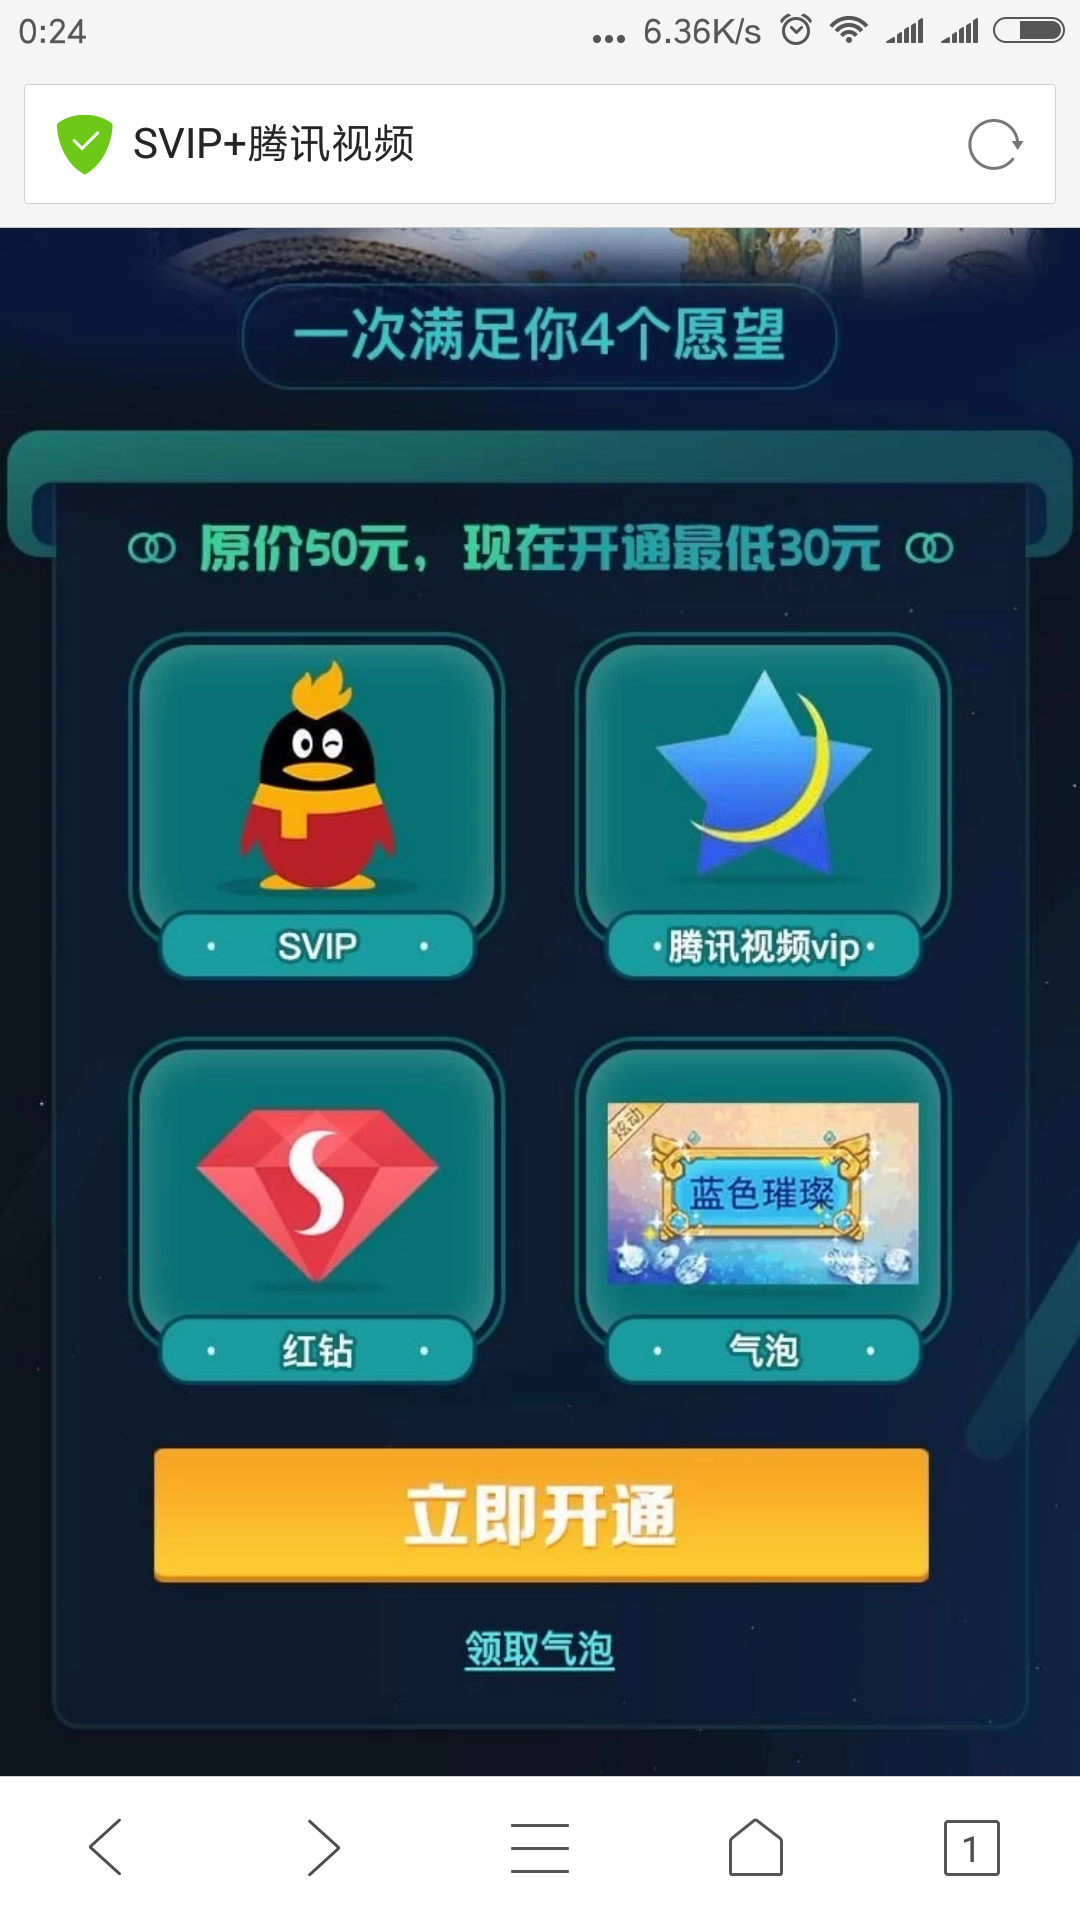 Screenshot_2017-09-10-00-24-16-937_com.tencent.mtt.png